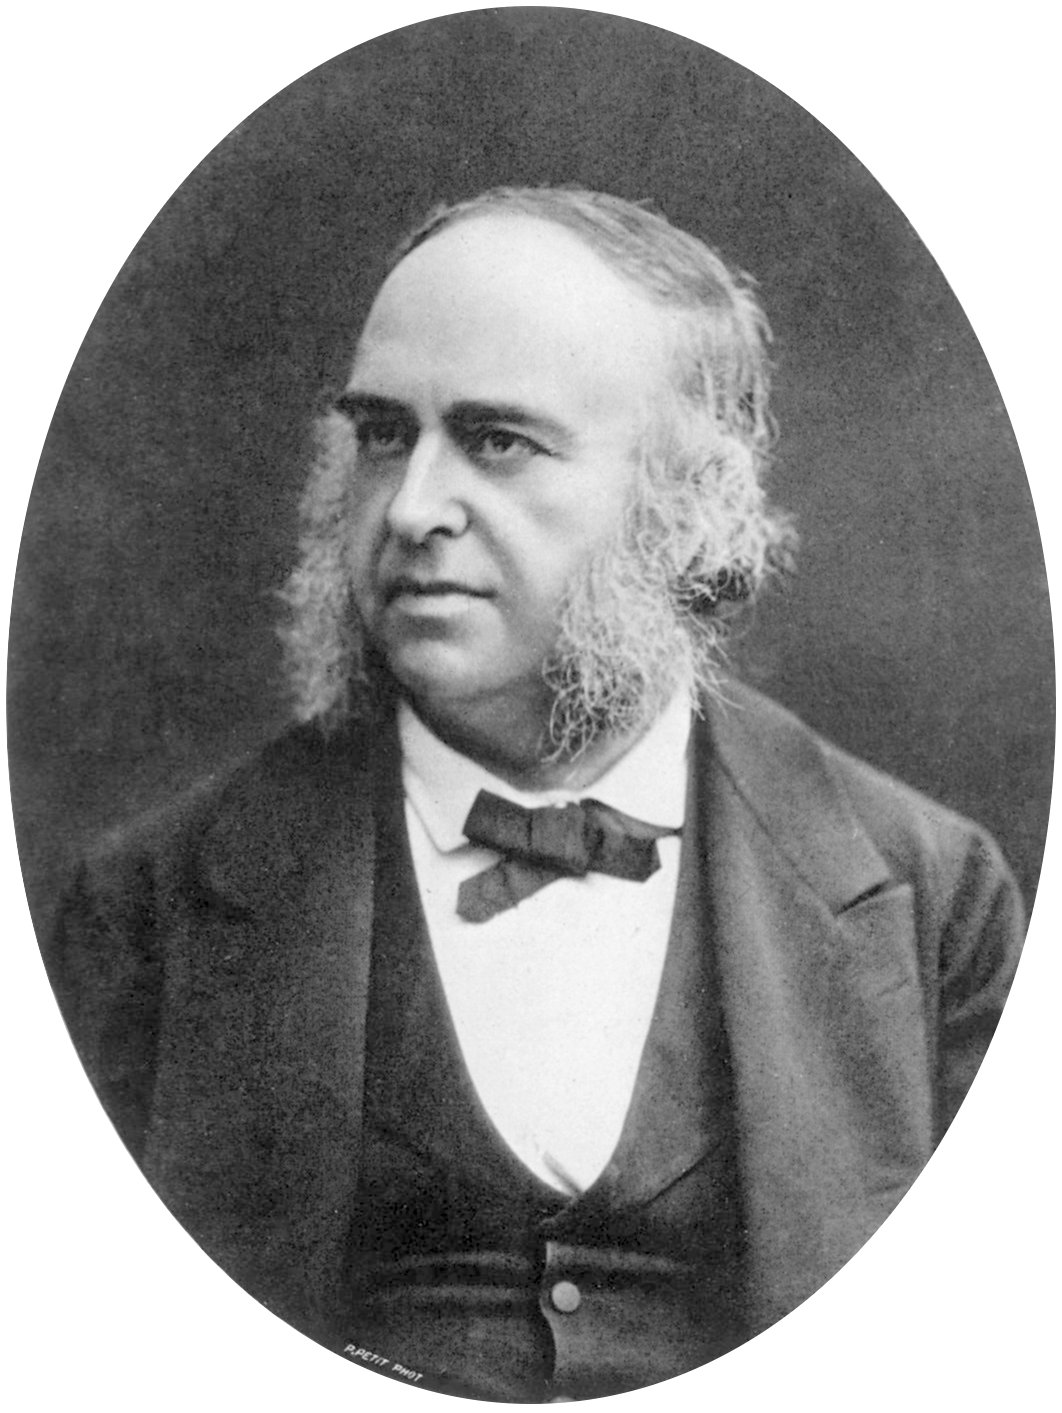 Pierre Paul Broca